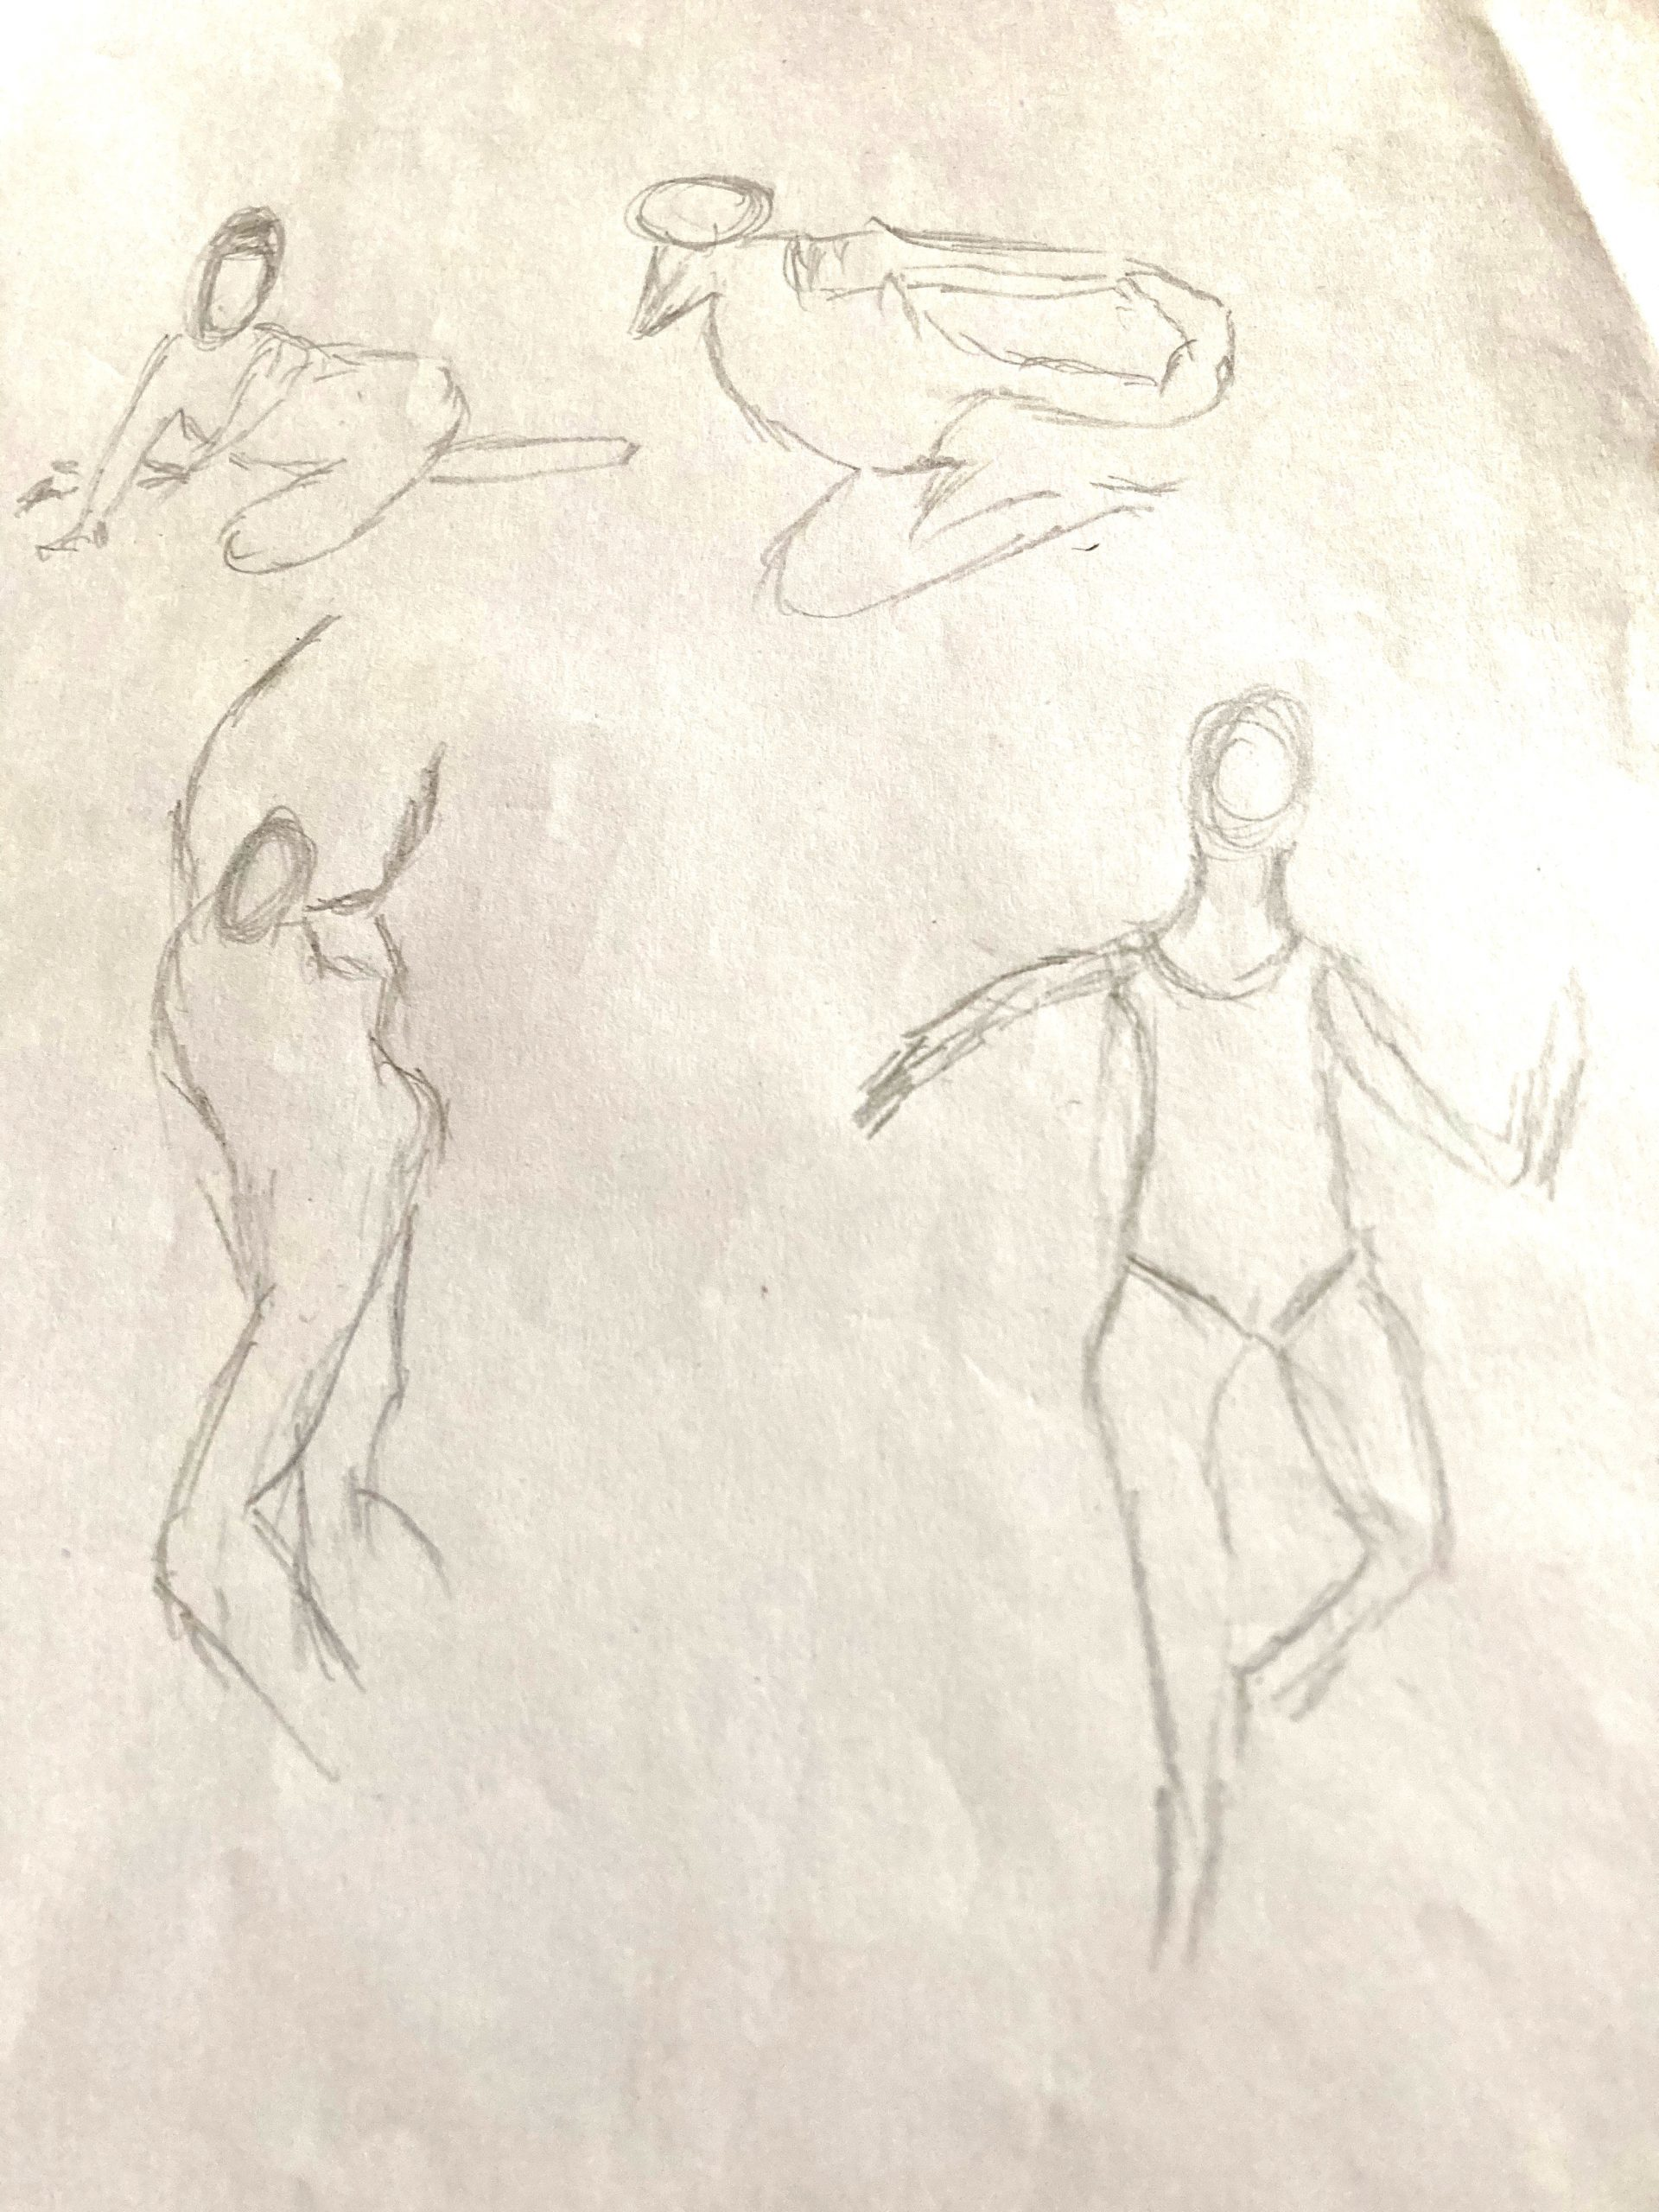 8th March – Figure Drawing & recap